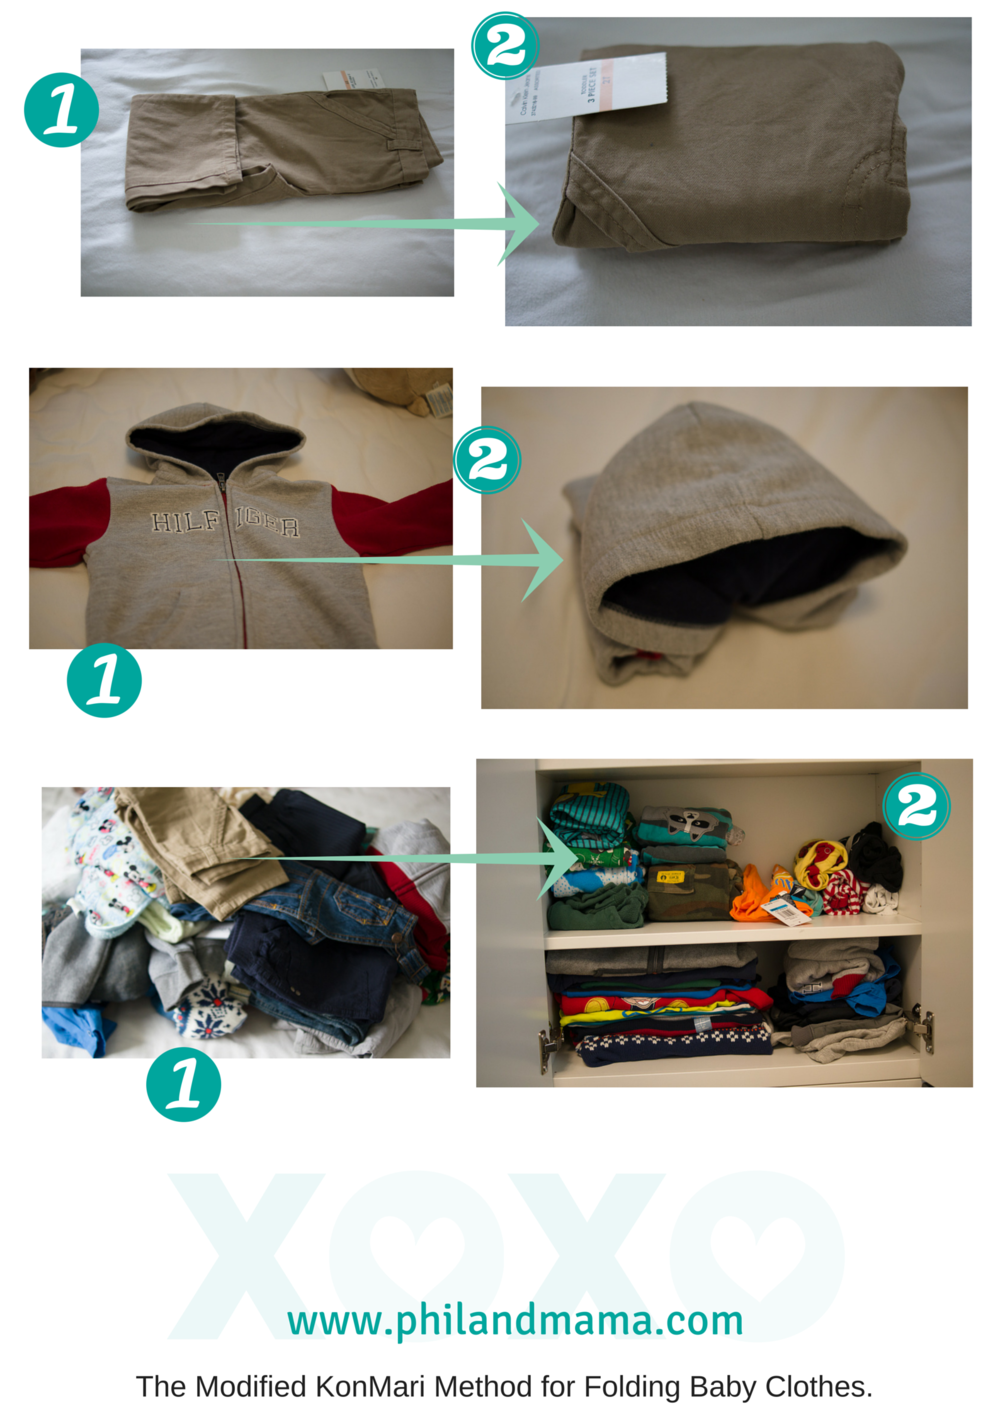 Folding clothes into rectangles or compact rolls to easily sort and store them in small spaces. Helps clean out a lot of closet space.